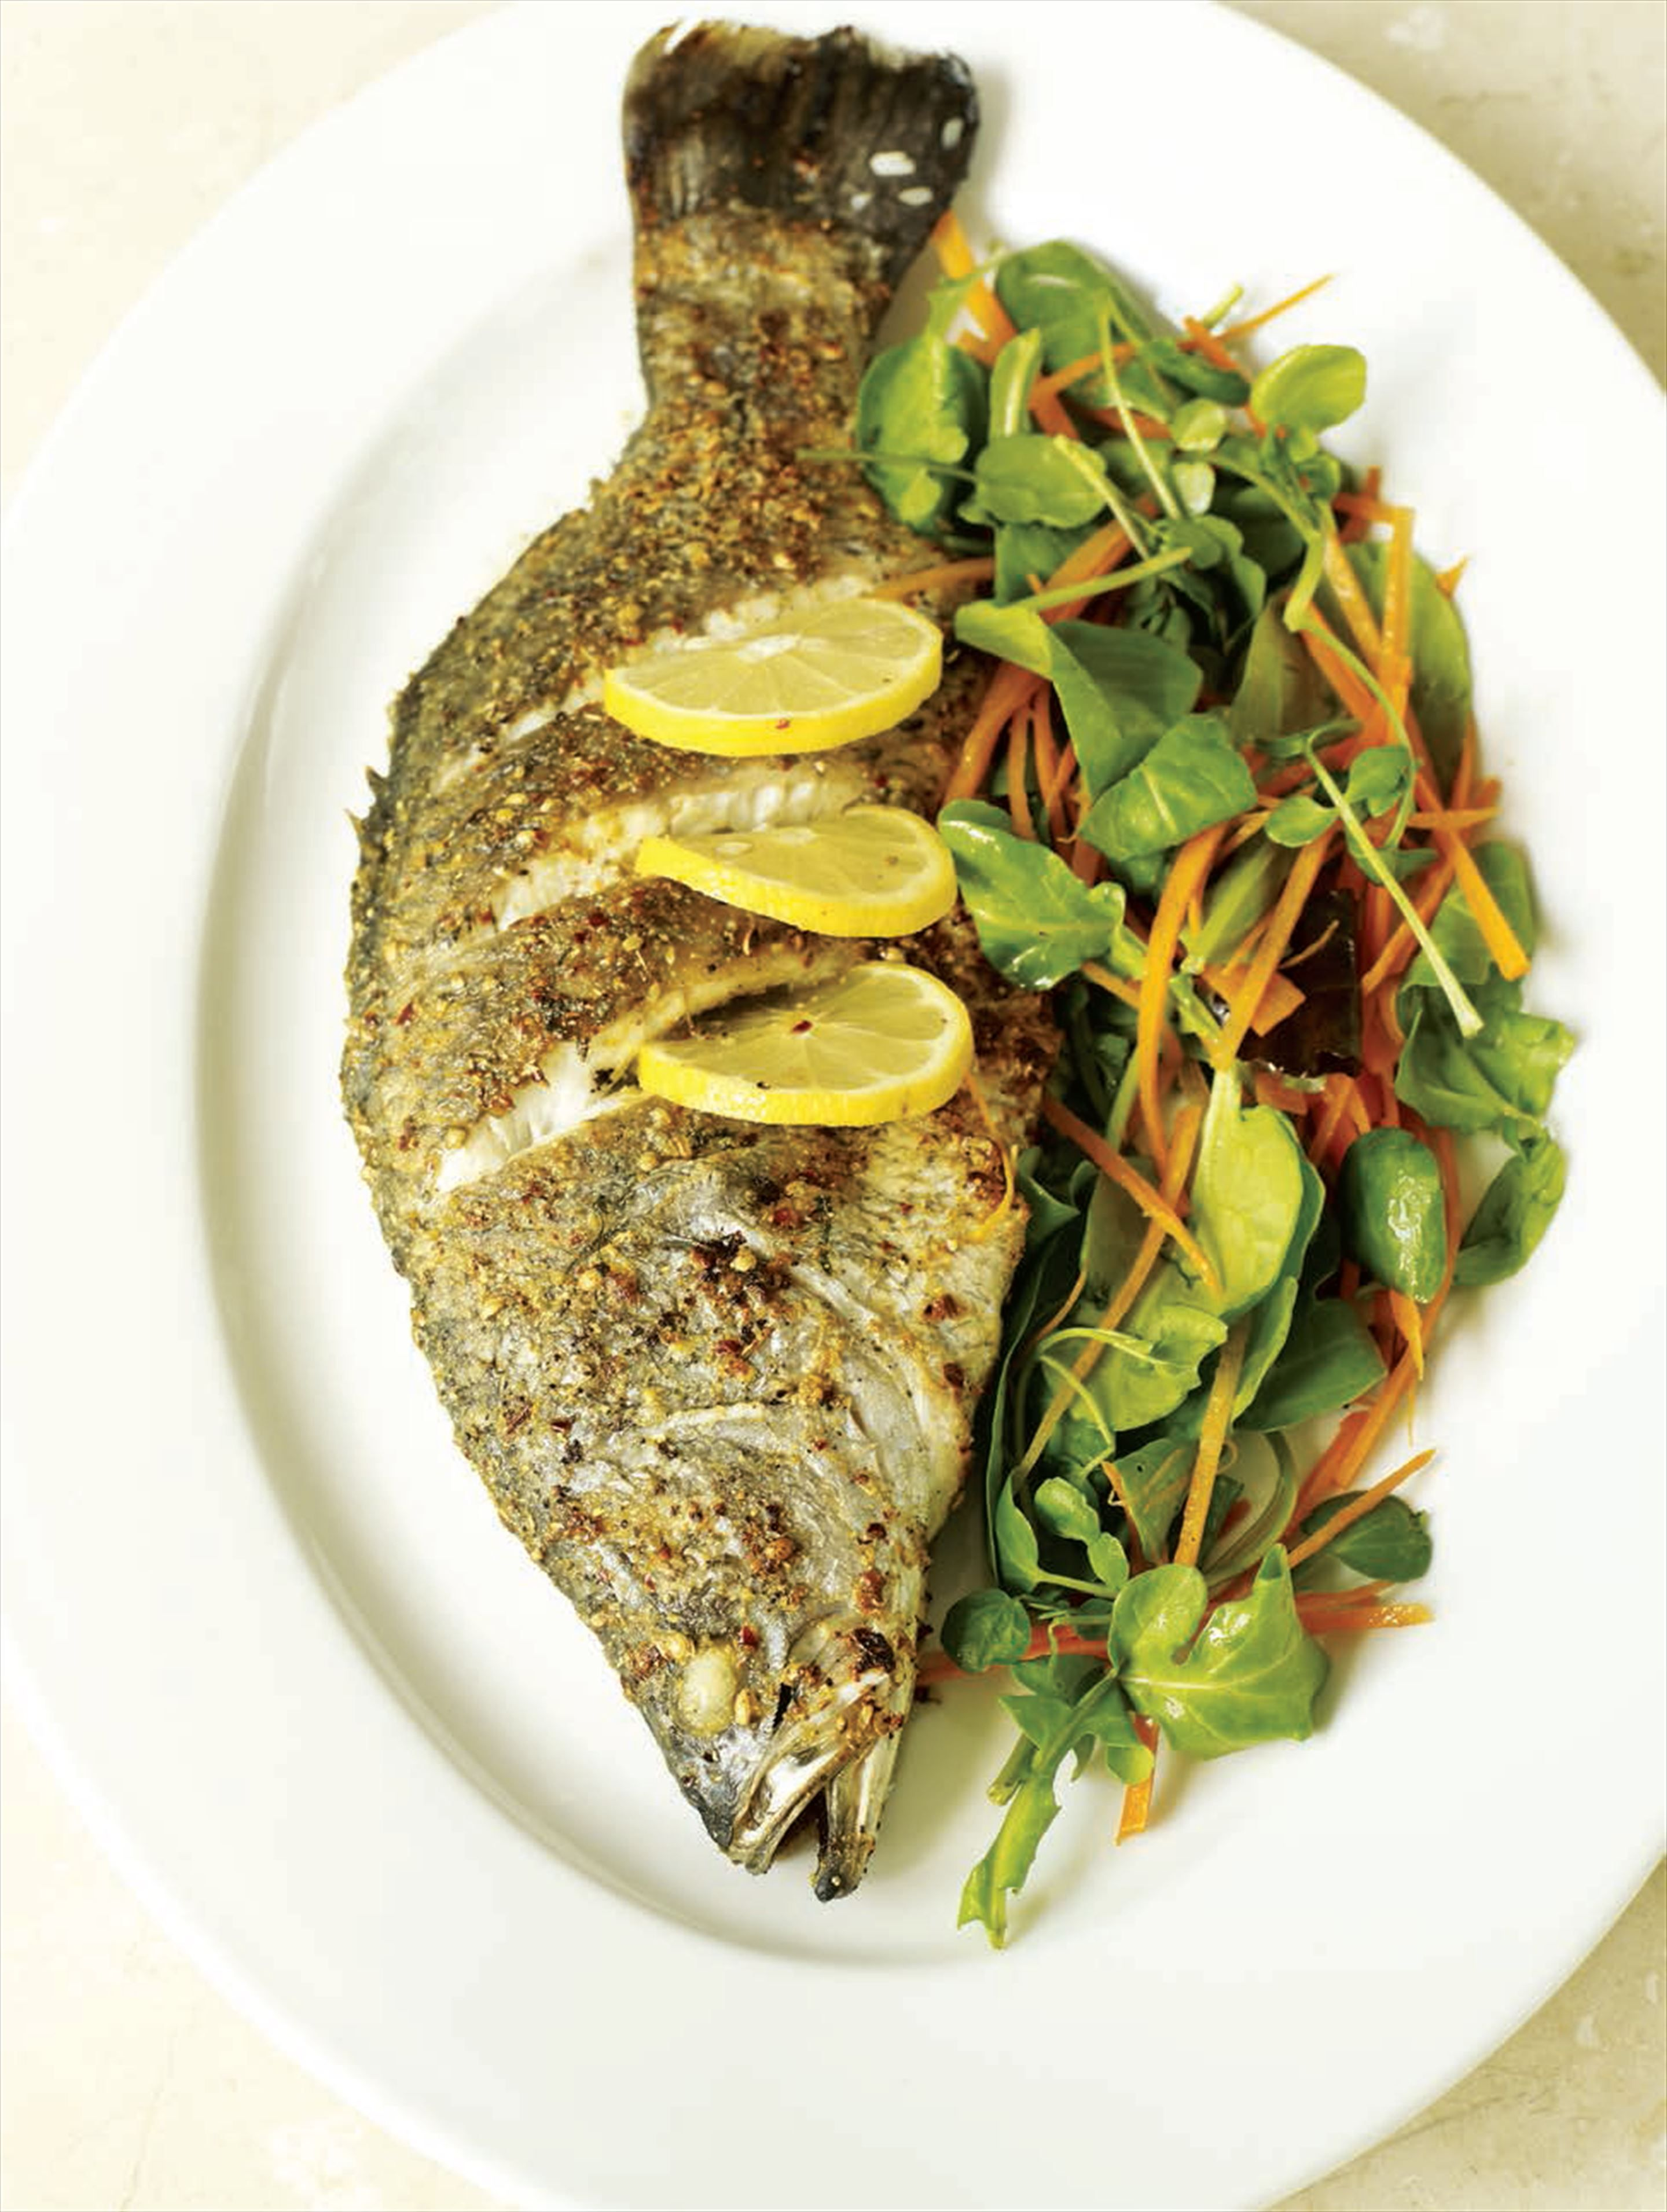 Spice Roasted Barramundi Recipe From Fish Indian Style By Atul Kochhar Cooked